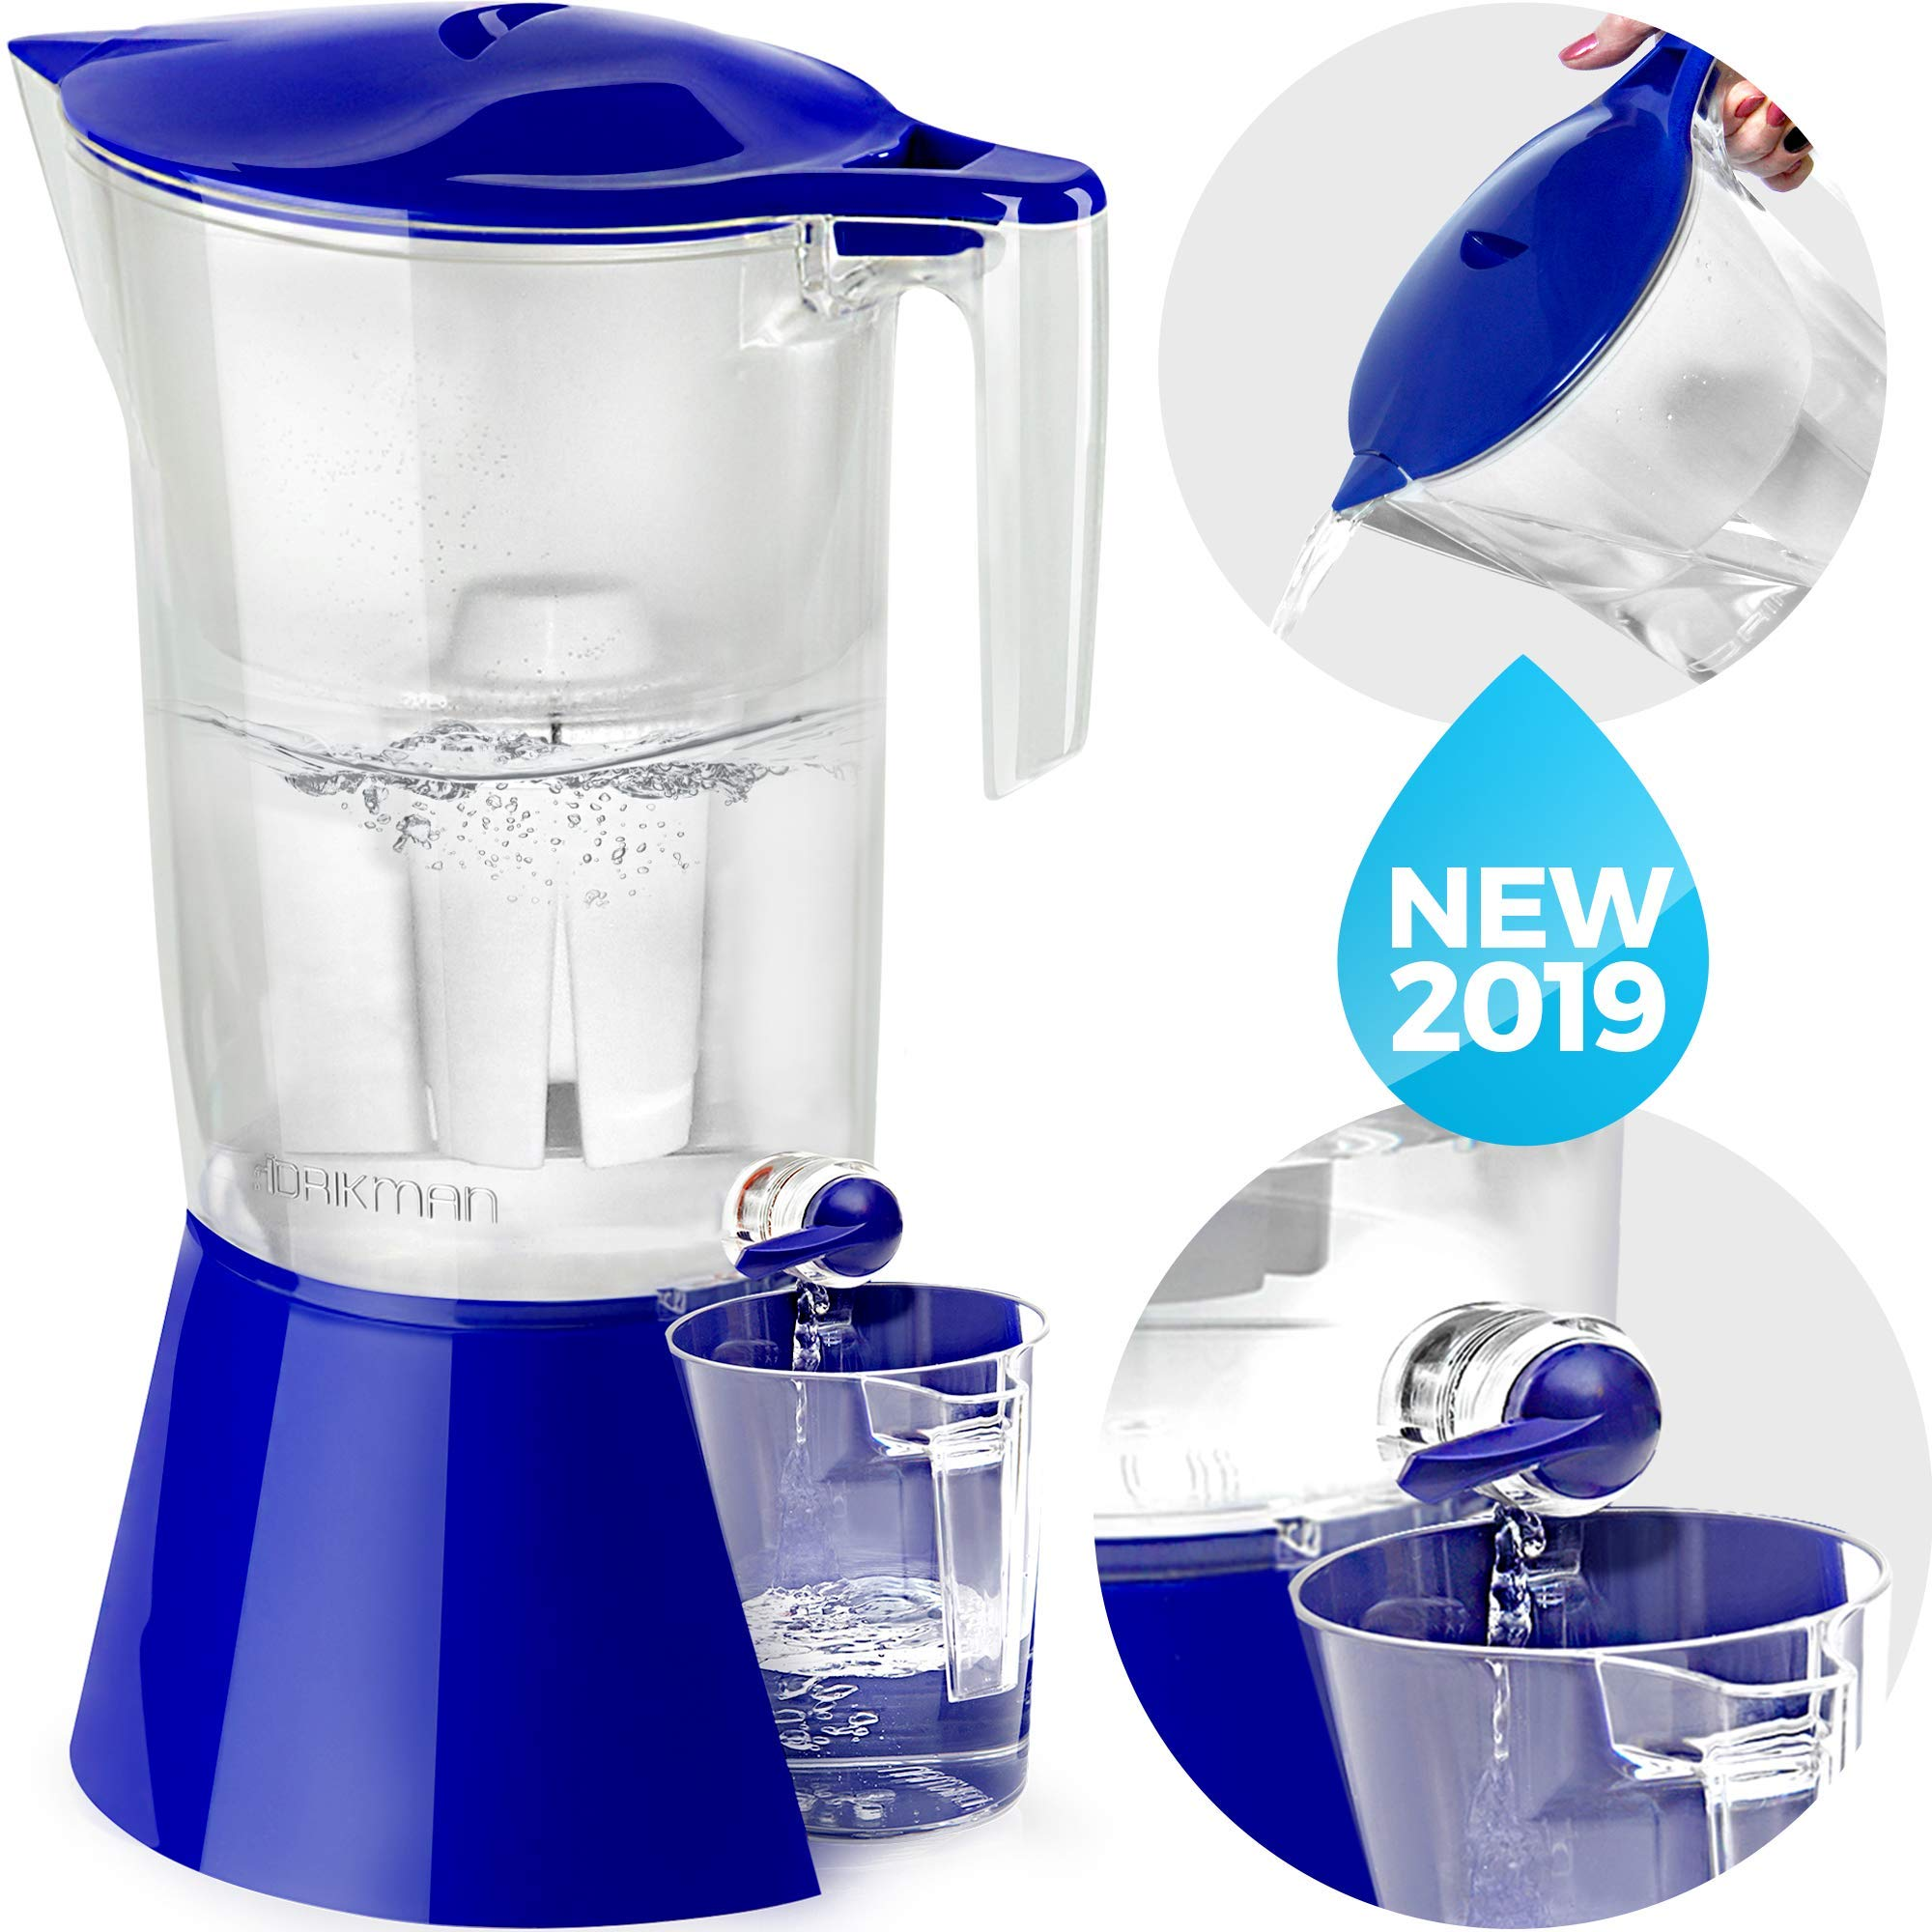 bf7c842c2 DRIKMAN Universal Water Filter Pitcher - New Model Water Purifier Pitchers  with Stand - Filtered Water